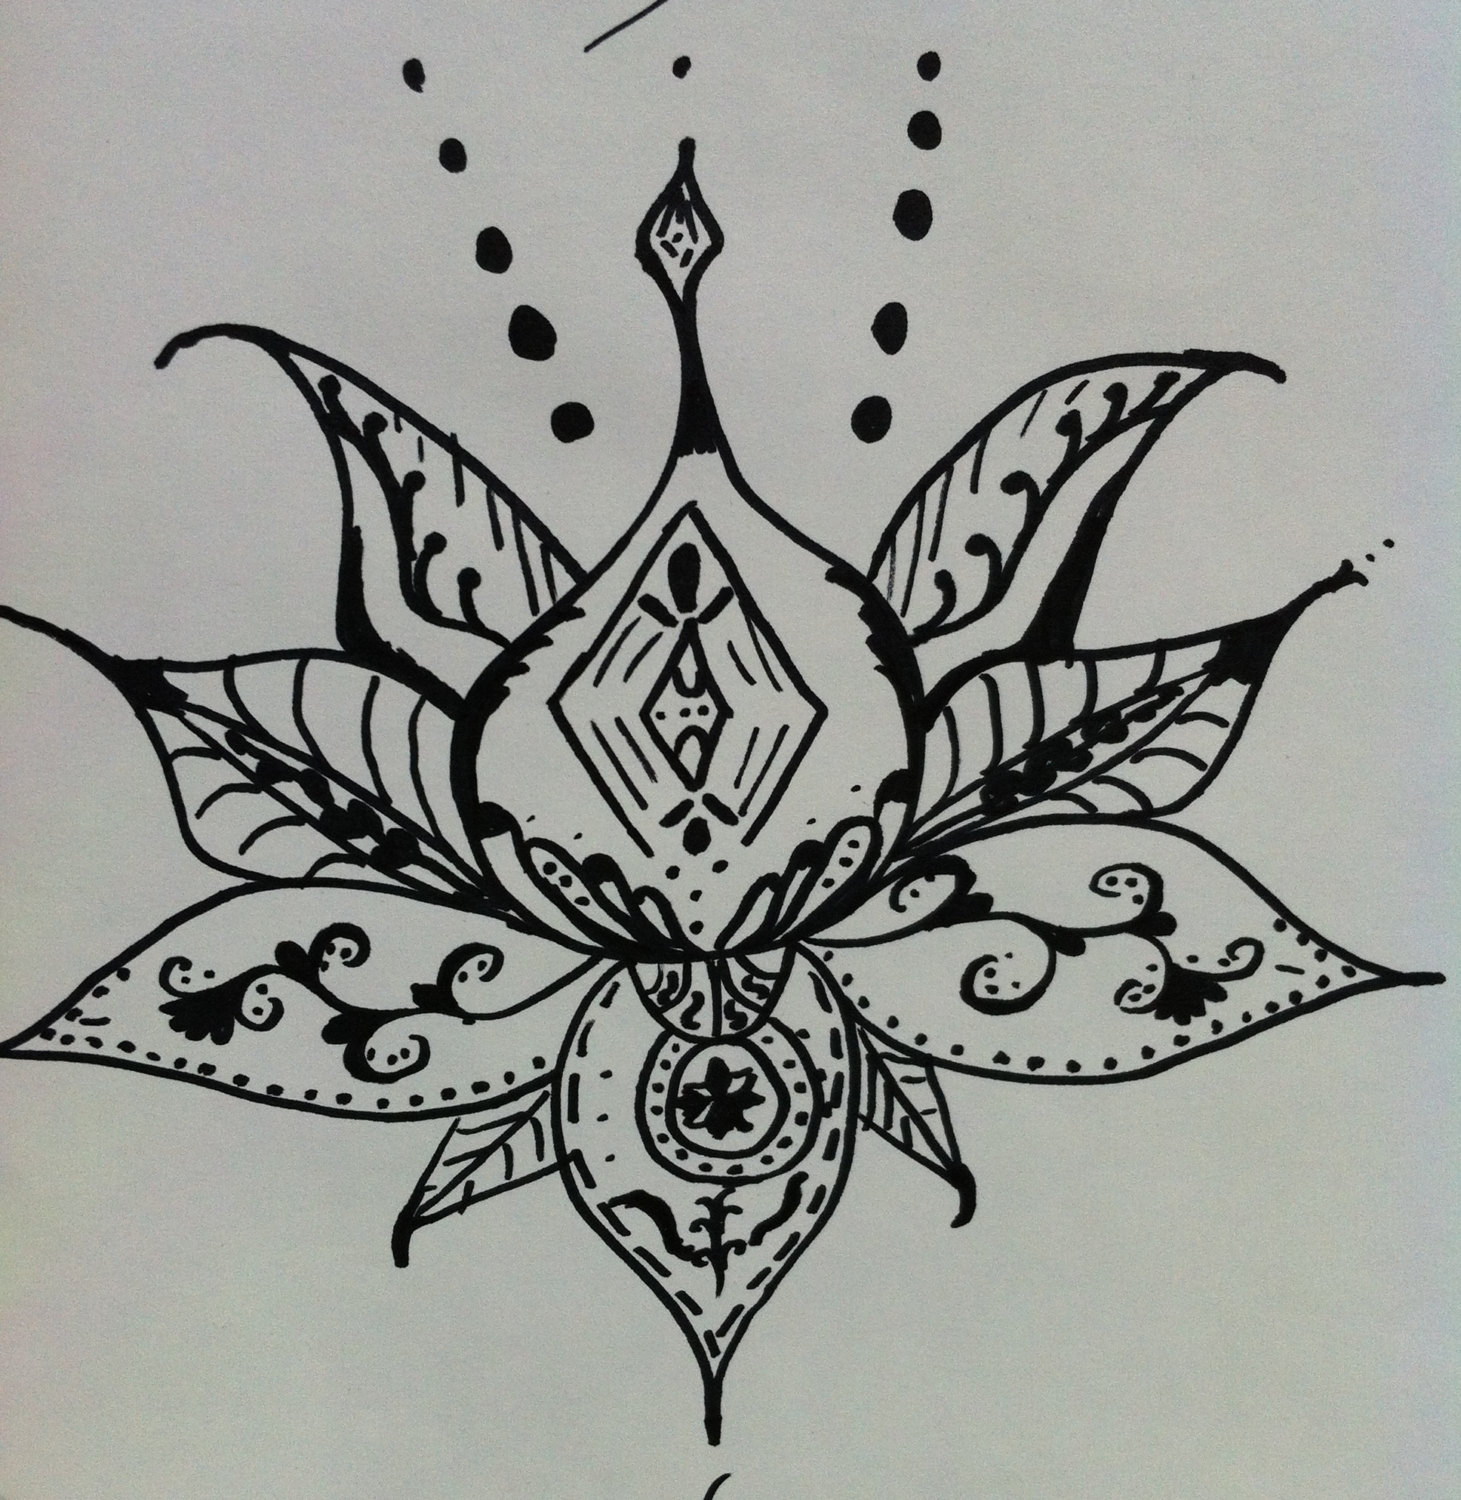 Lotus flower art henna style lotus flower drawing 12x9 handmade lotus flower art henna style lotus flower drawing 12x9 handmade original zentangle izmirmasajfo Image collections